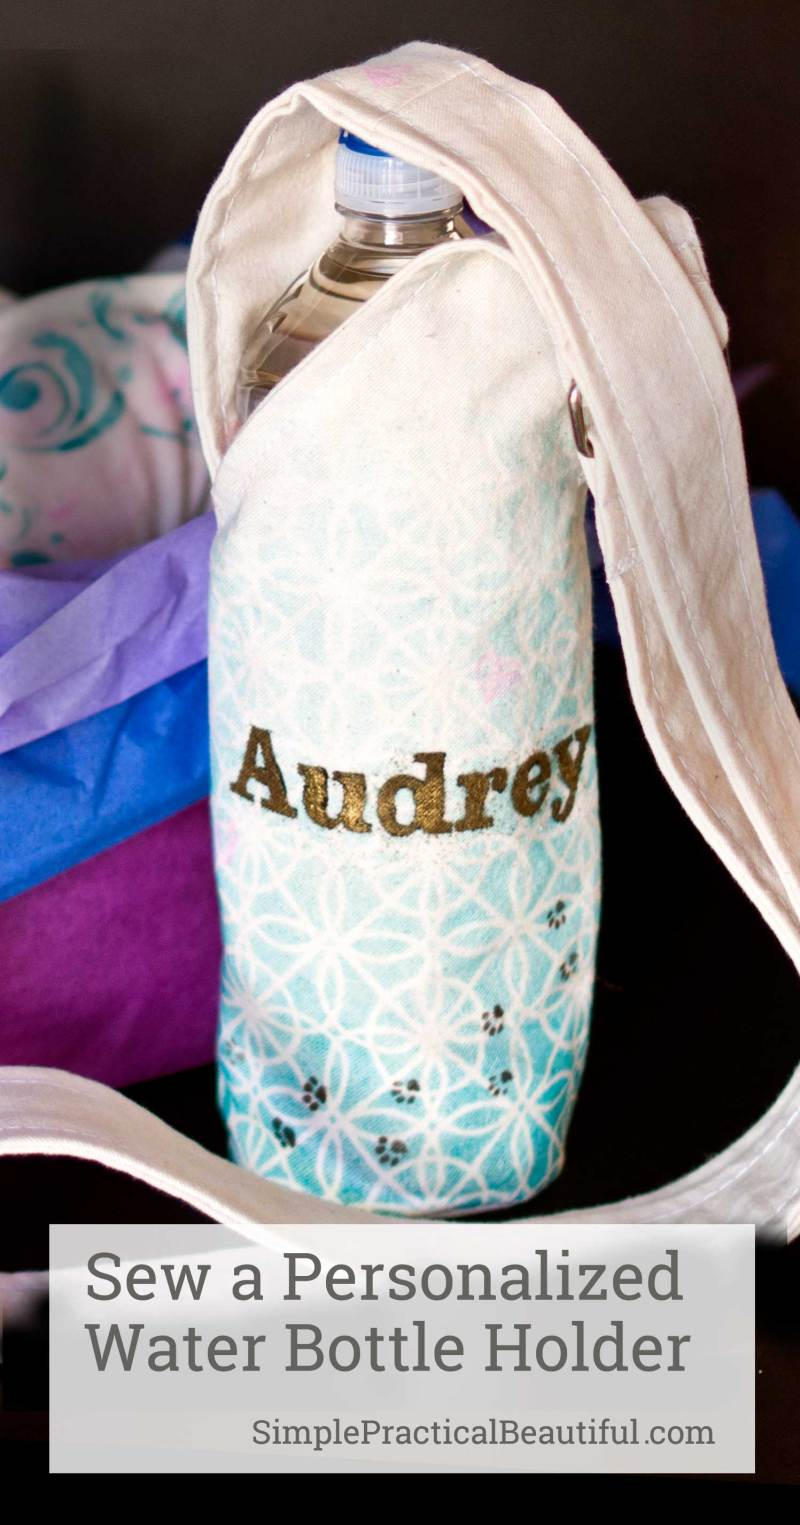 Use this free printable pattern to sew a water bottle holder, then personalize it with stamps and stencils. A great Holiday gift idea!